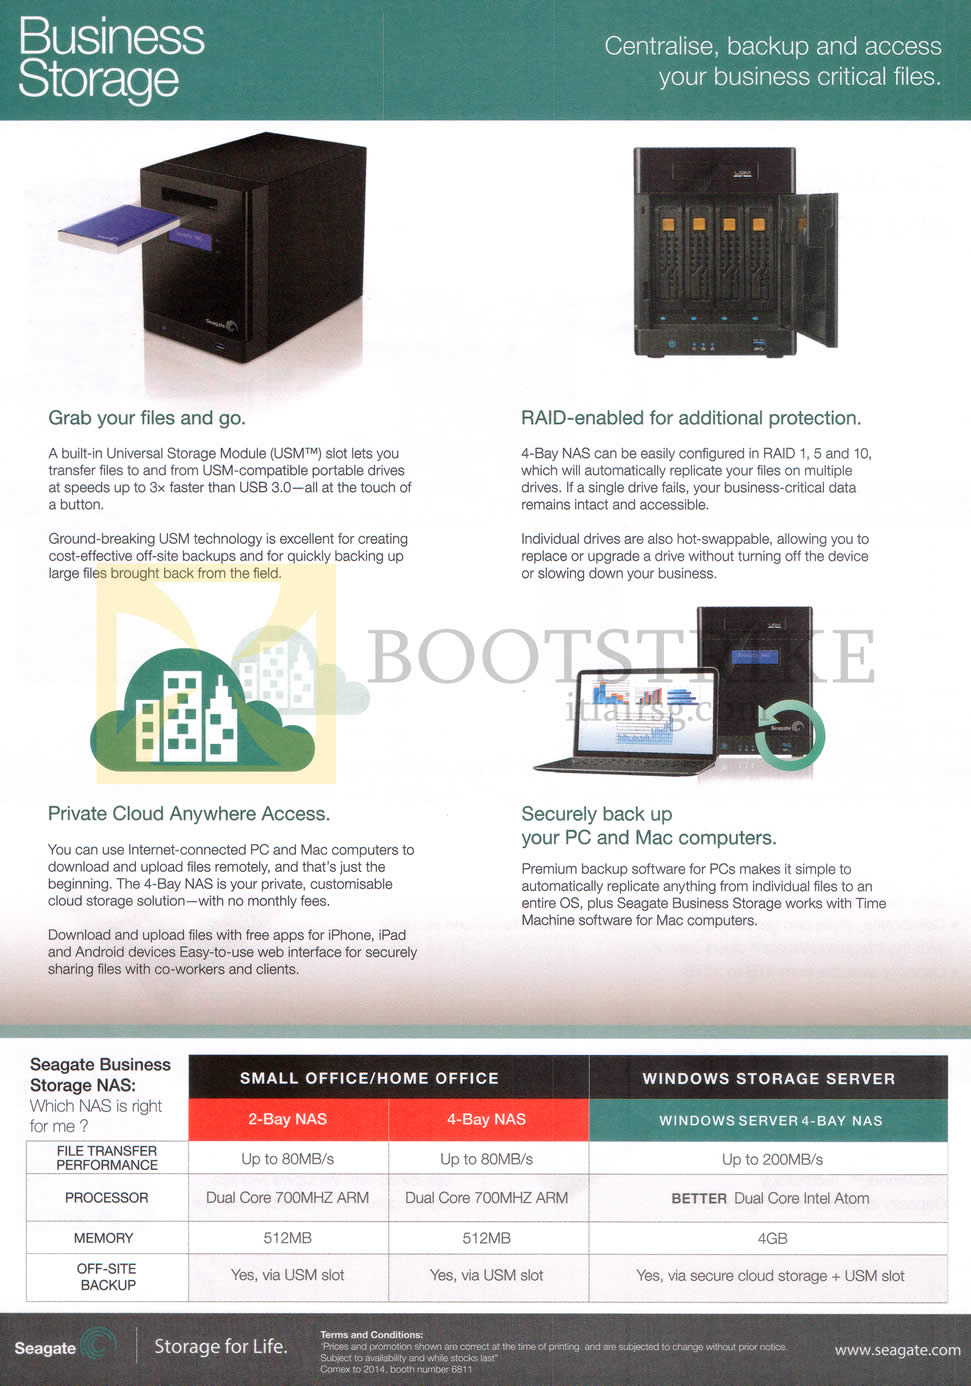 COMEX 2014 price list image brochure of Seagate Business Storage Features 2 Bay NAS, 4 Bay NAS, Windows Server 4 Bay NAS